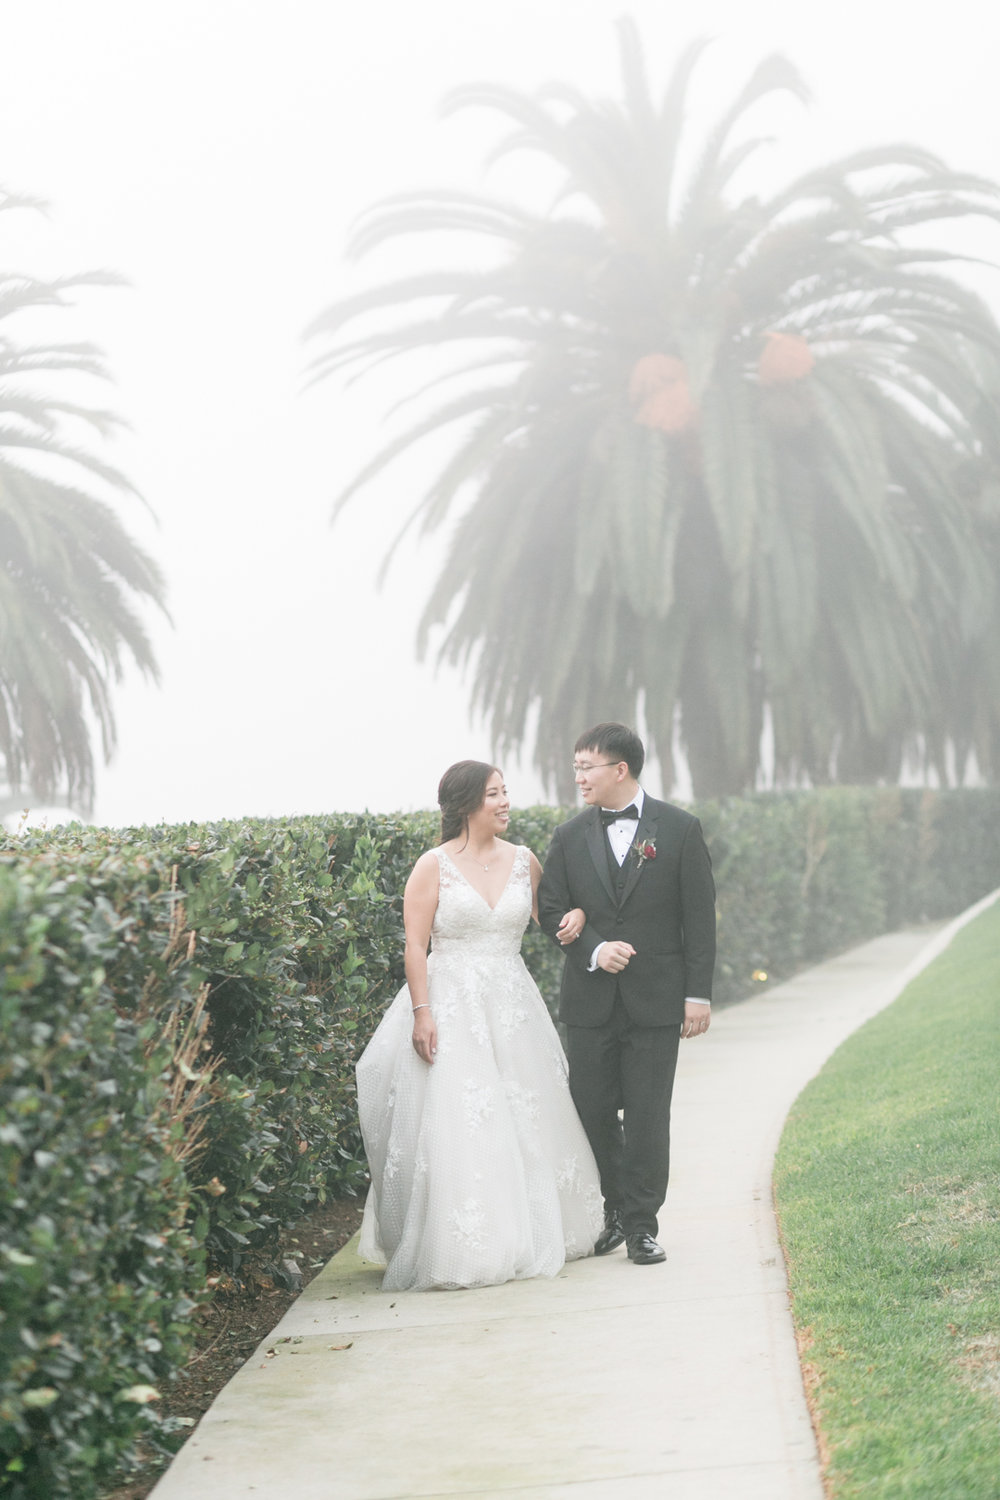 DaybreakandDusk_EricaKevin_WeddingPhotography_Blog-68.jpg